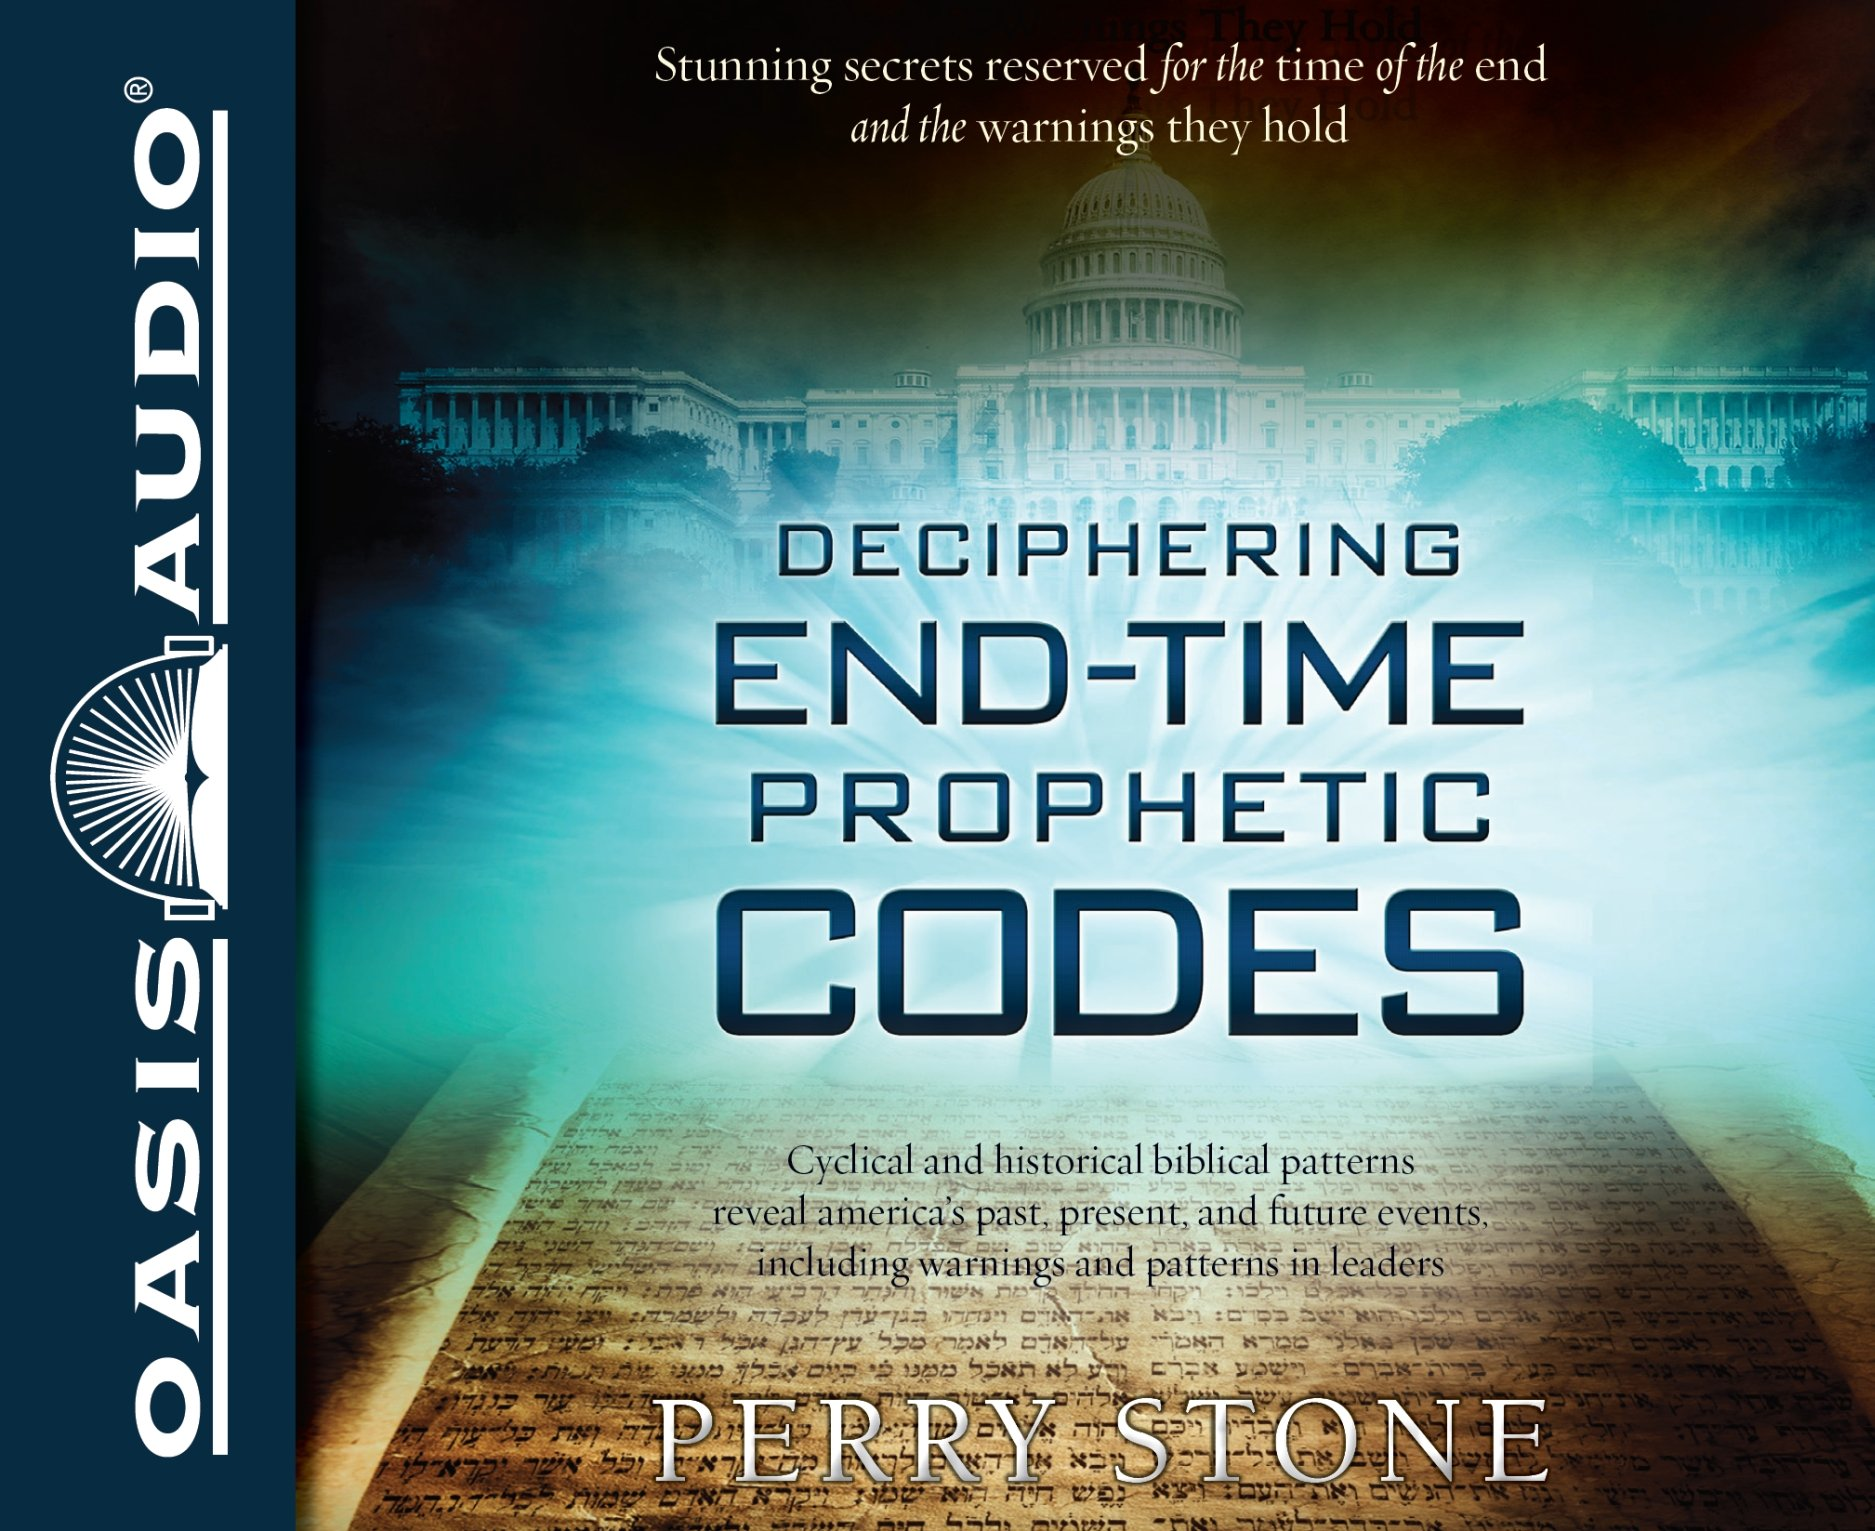 Deciphering end time prophetic codes cyclical and historical deciphering end time prophetic codes cyclical and historical biblical patterns reveal americas past present and future events including warnings and fandeluxe Image collections